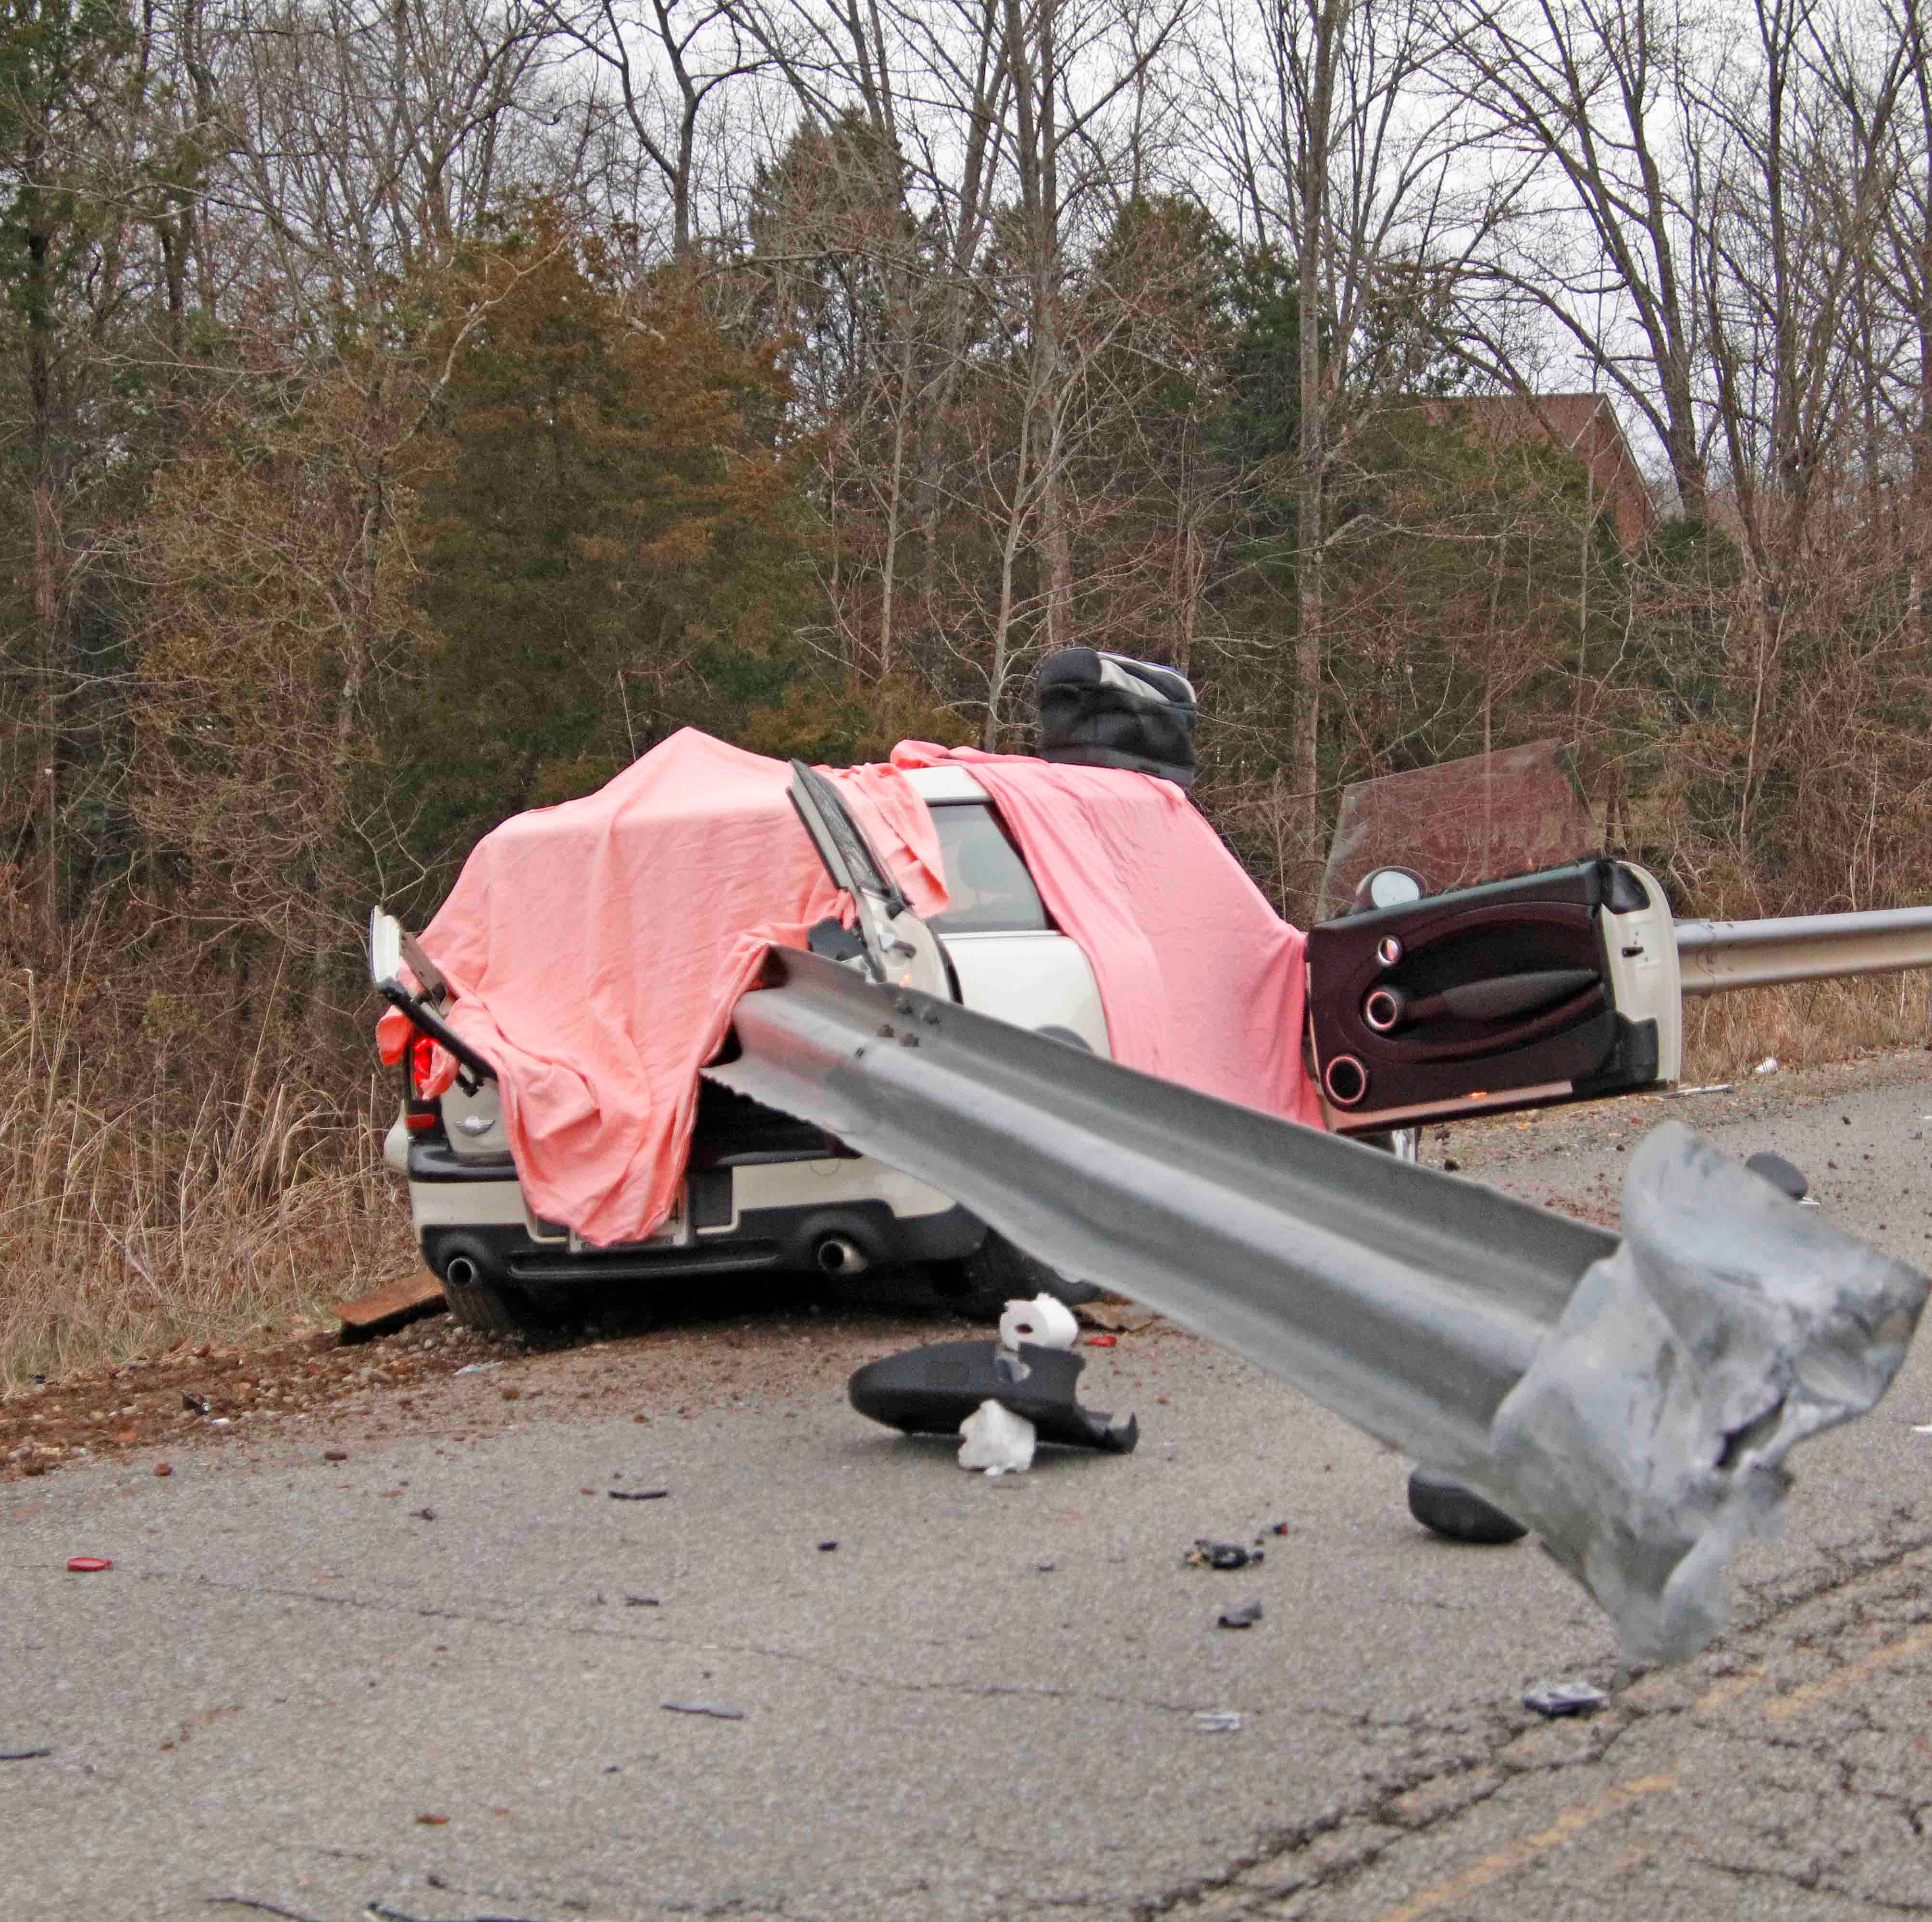 Man killed after guard rail smashes through Mini Cooper in Clarksville